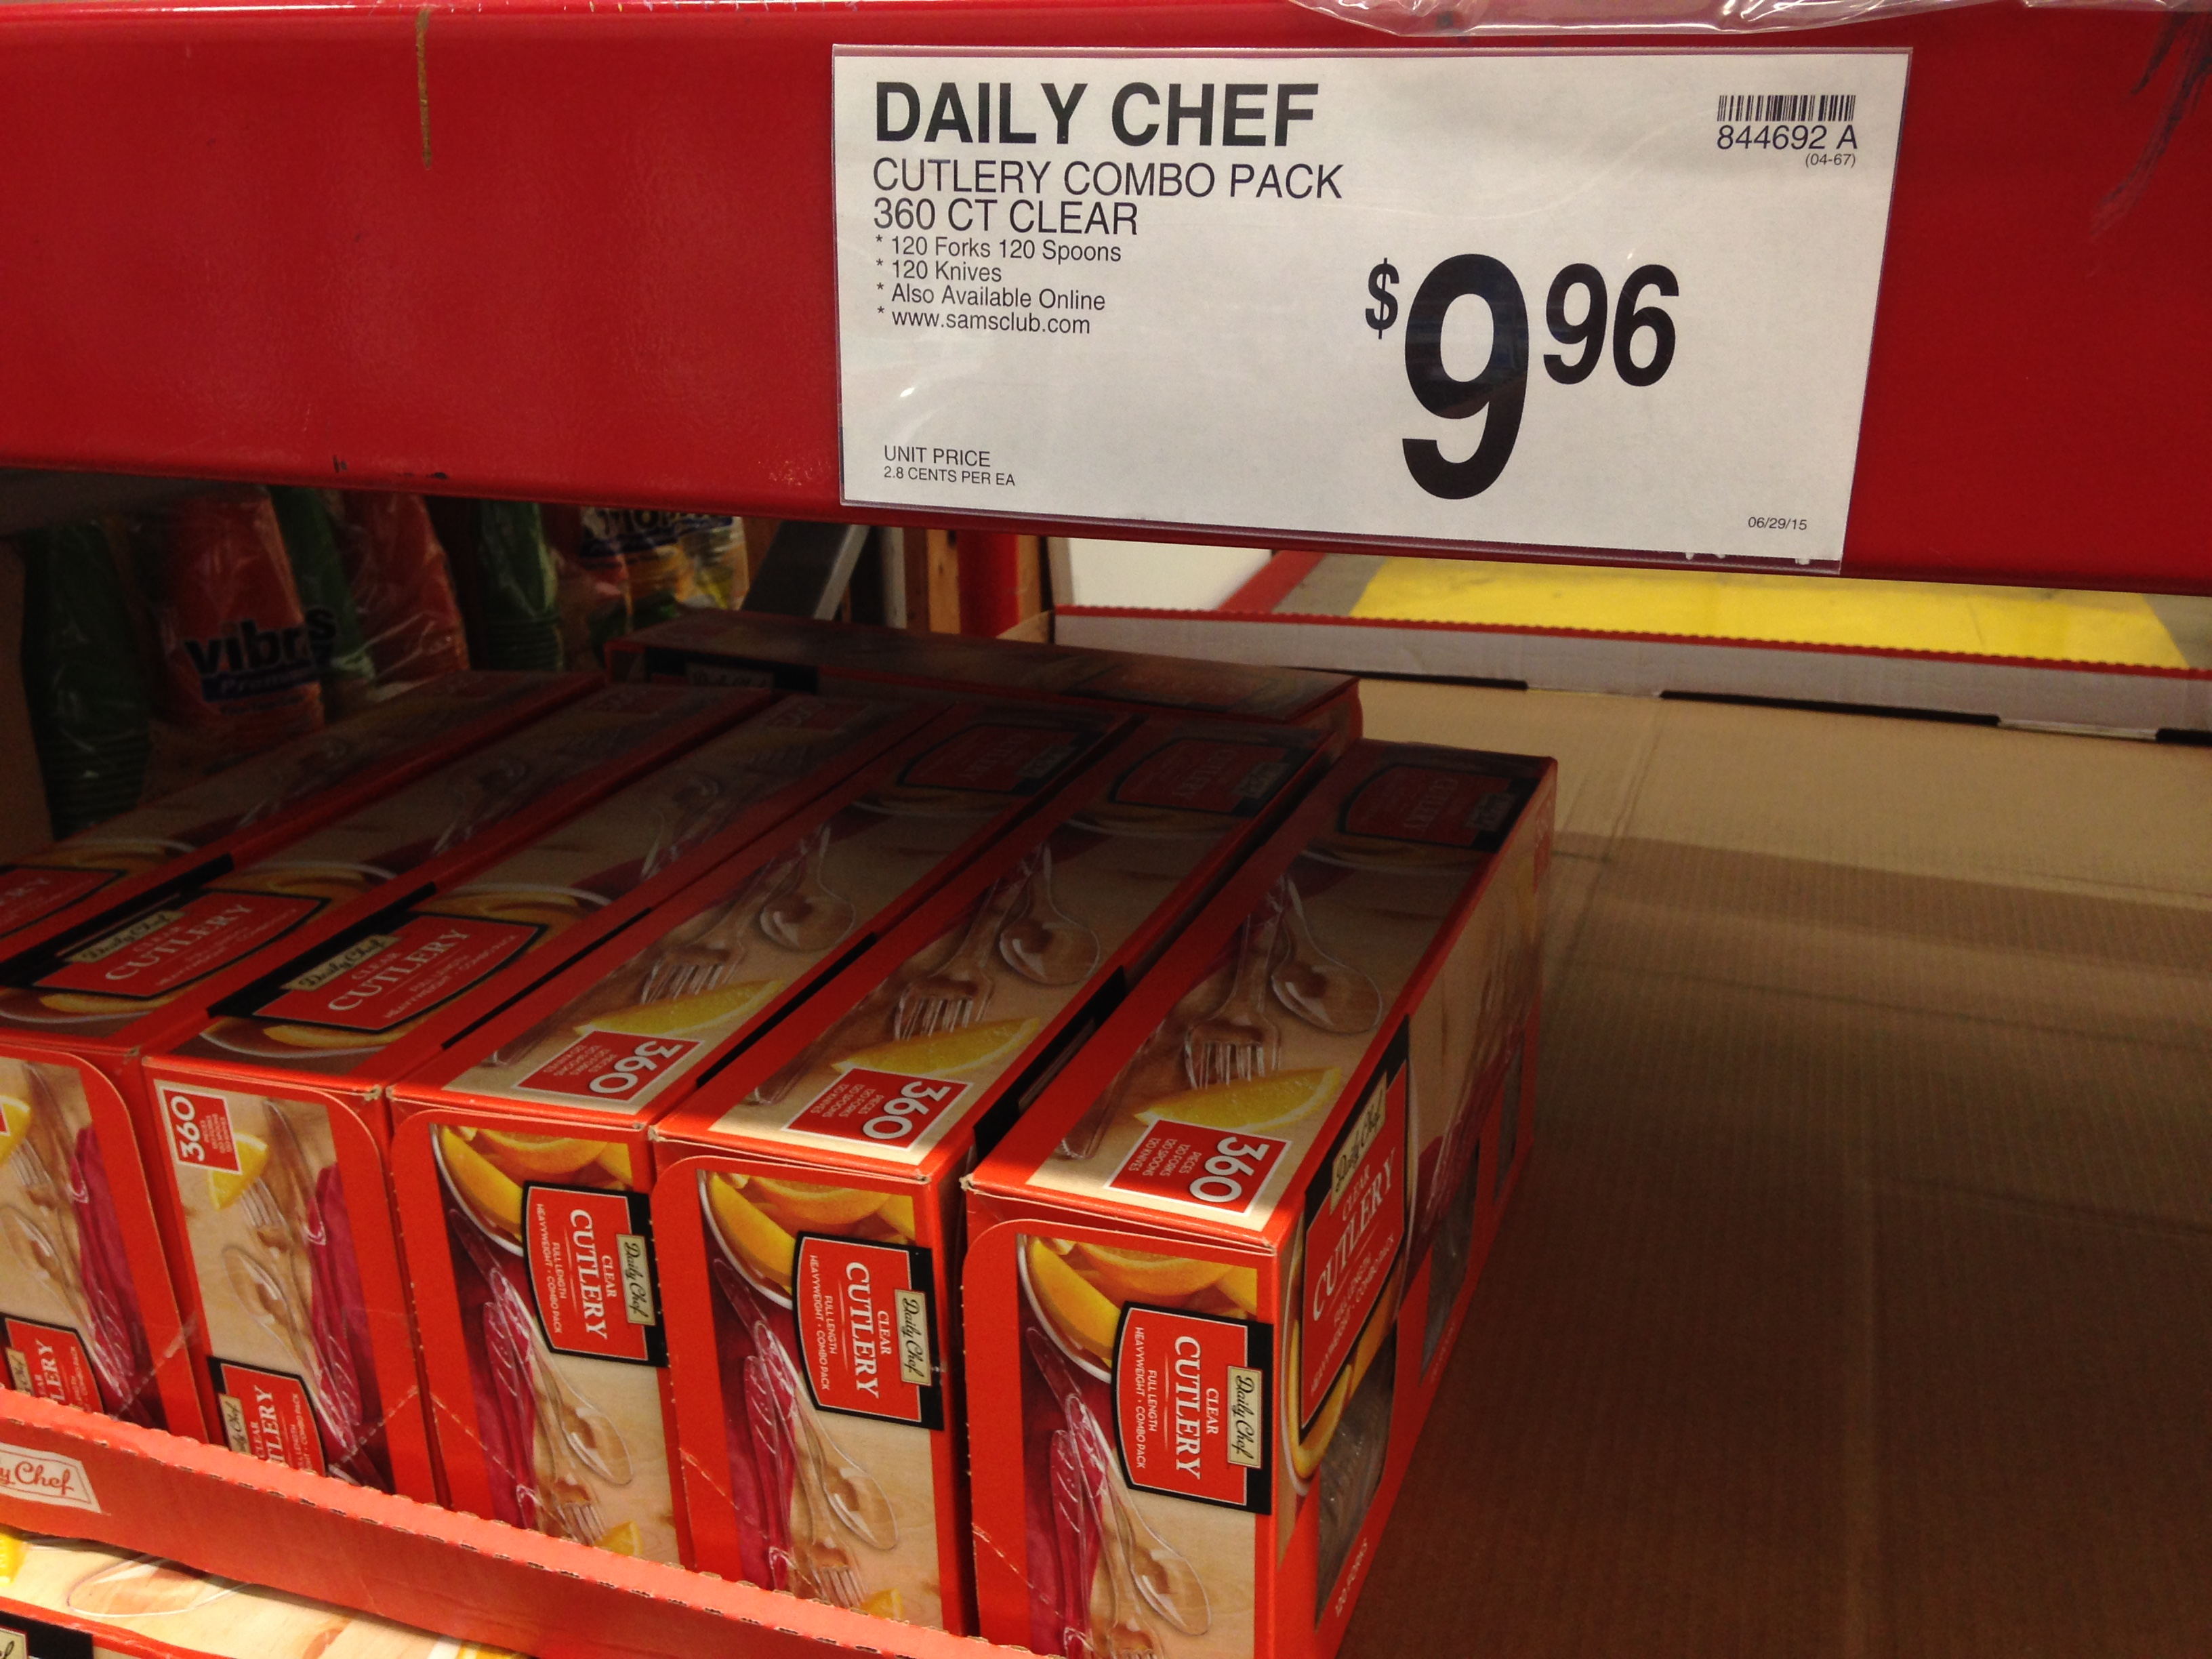 Sam's Club Daily Chef disposable cutlery